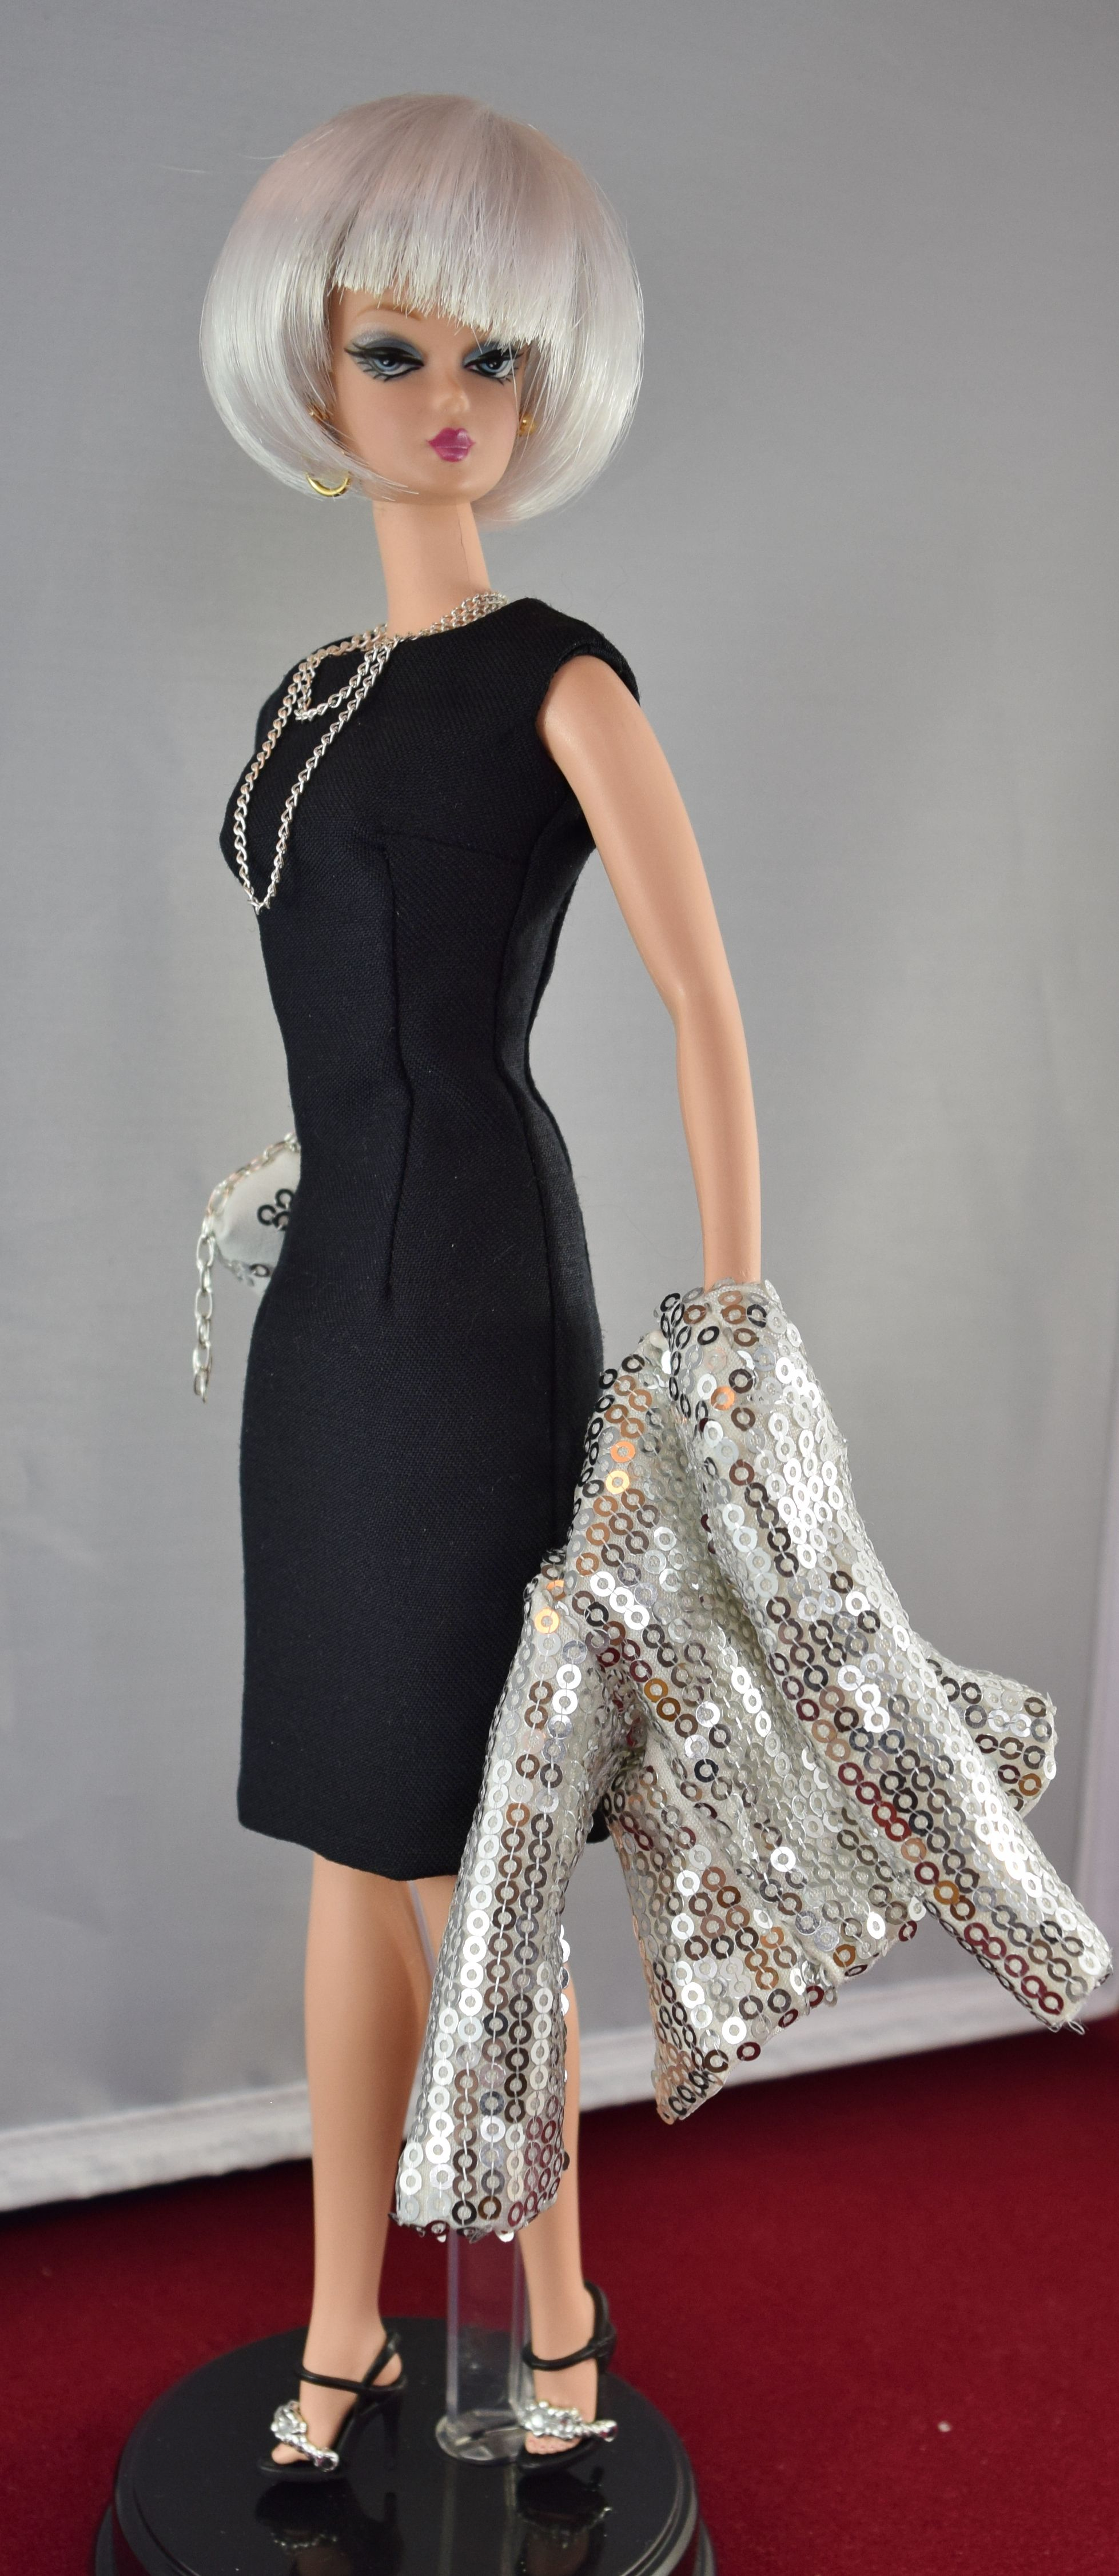 Sequined Jacket and Black Sheath - Sold  on Etsy